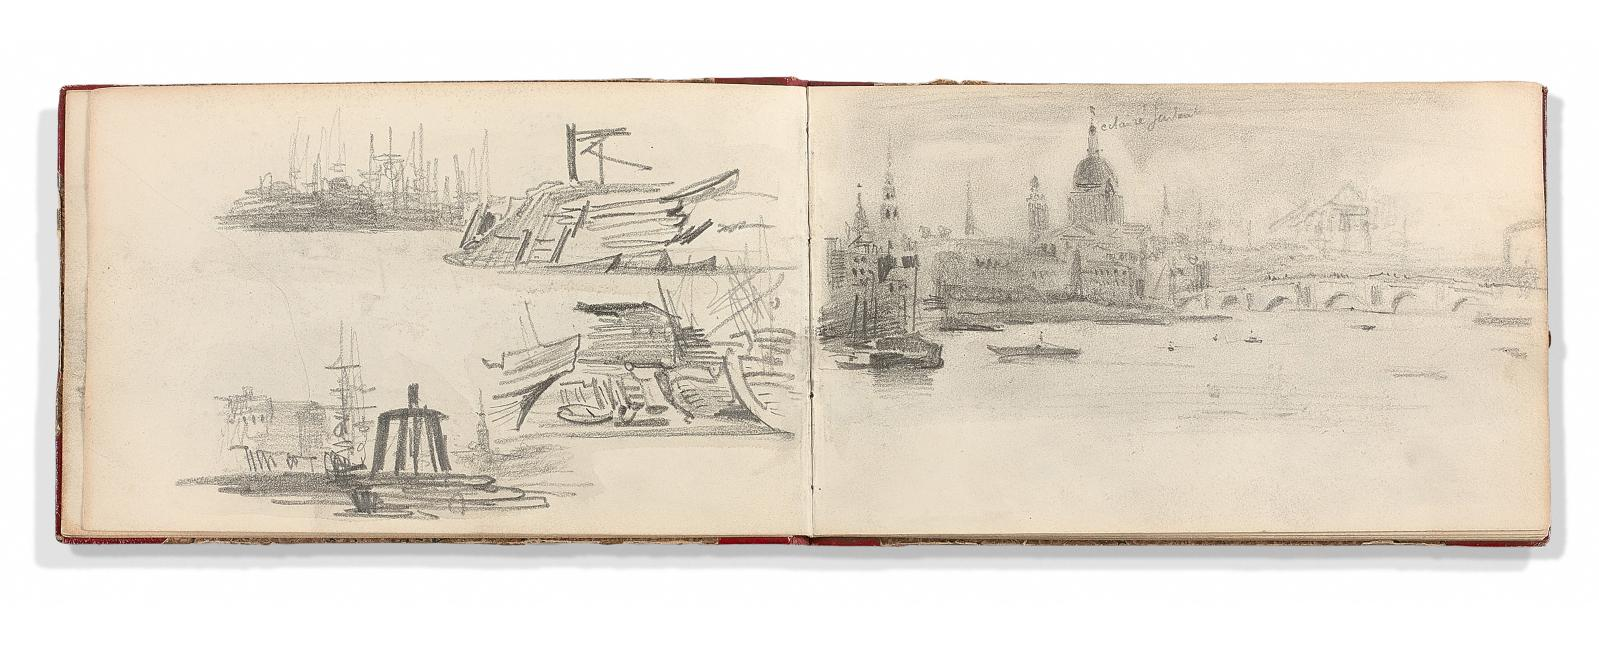 "Eugène Delacroix (1798-1863), ""Album d'Angleterre: vues de Londres, de la Tamise, de Greenwich"", studies of the Parthenon friezes, study of horses, dr"